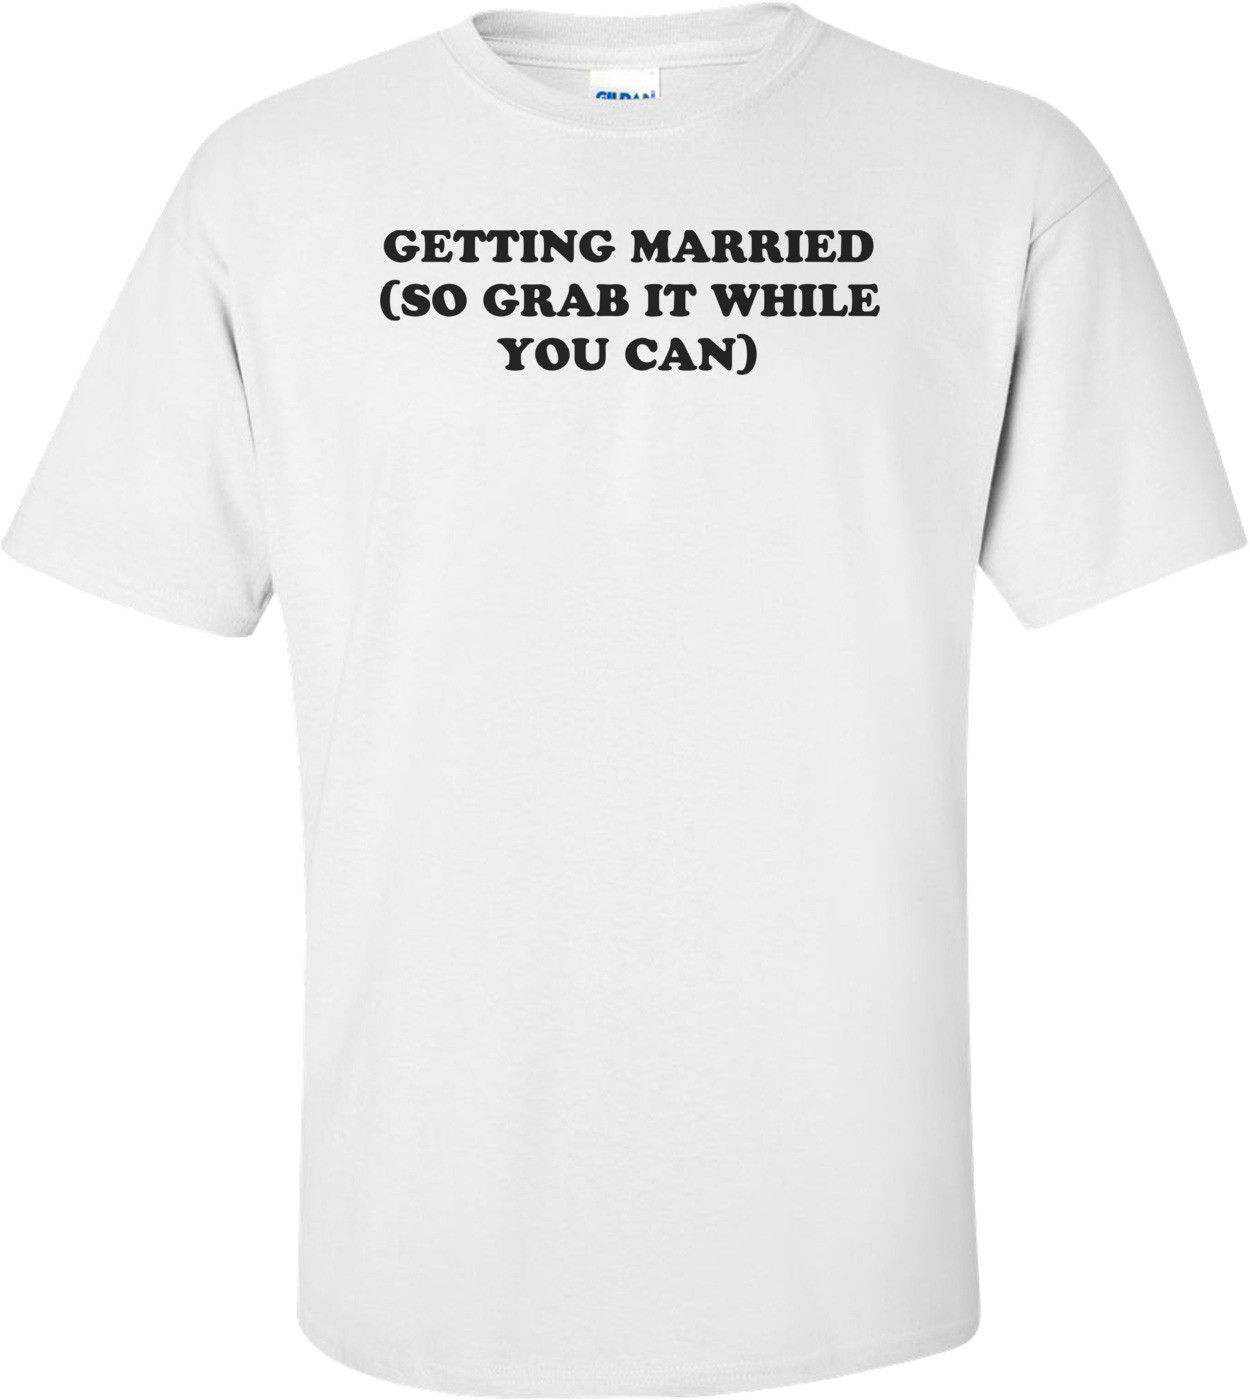 GETTING MARRIED (SO GRAB IT WHILE YOU CAN) Shirt